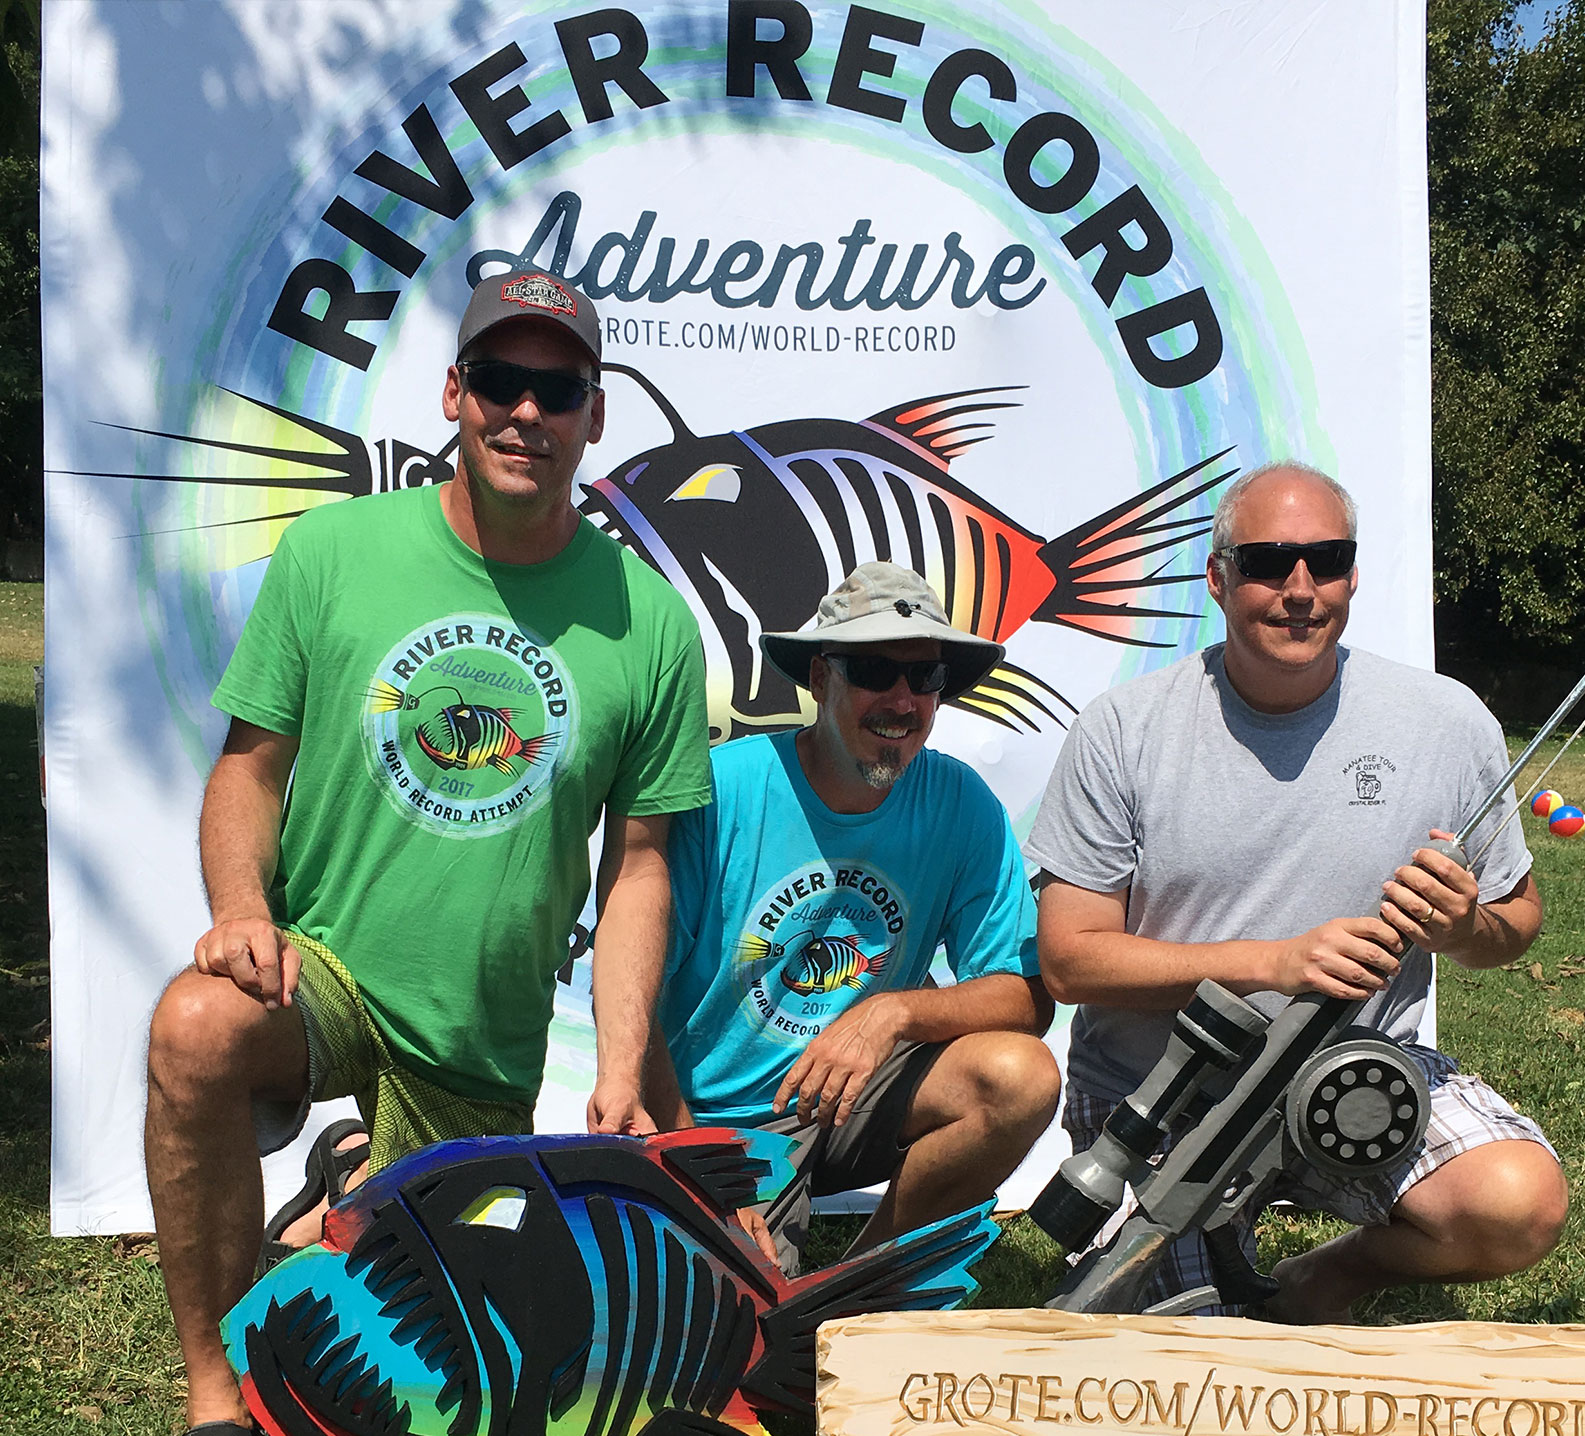 Marc Phelps and his brothers during the River Record Adventure party in Madison